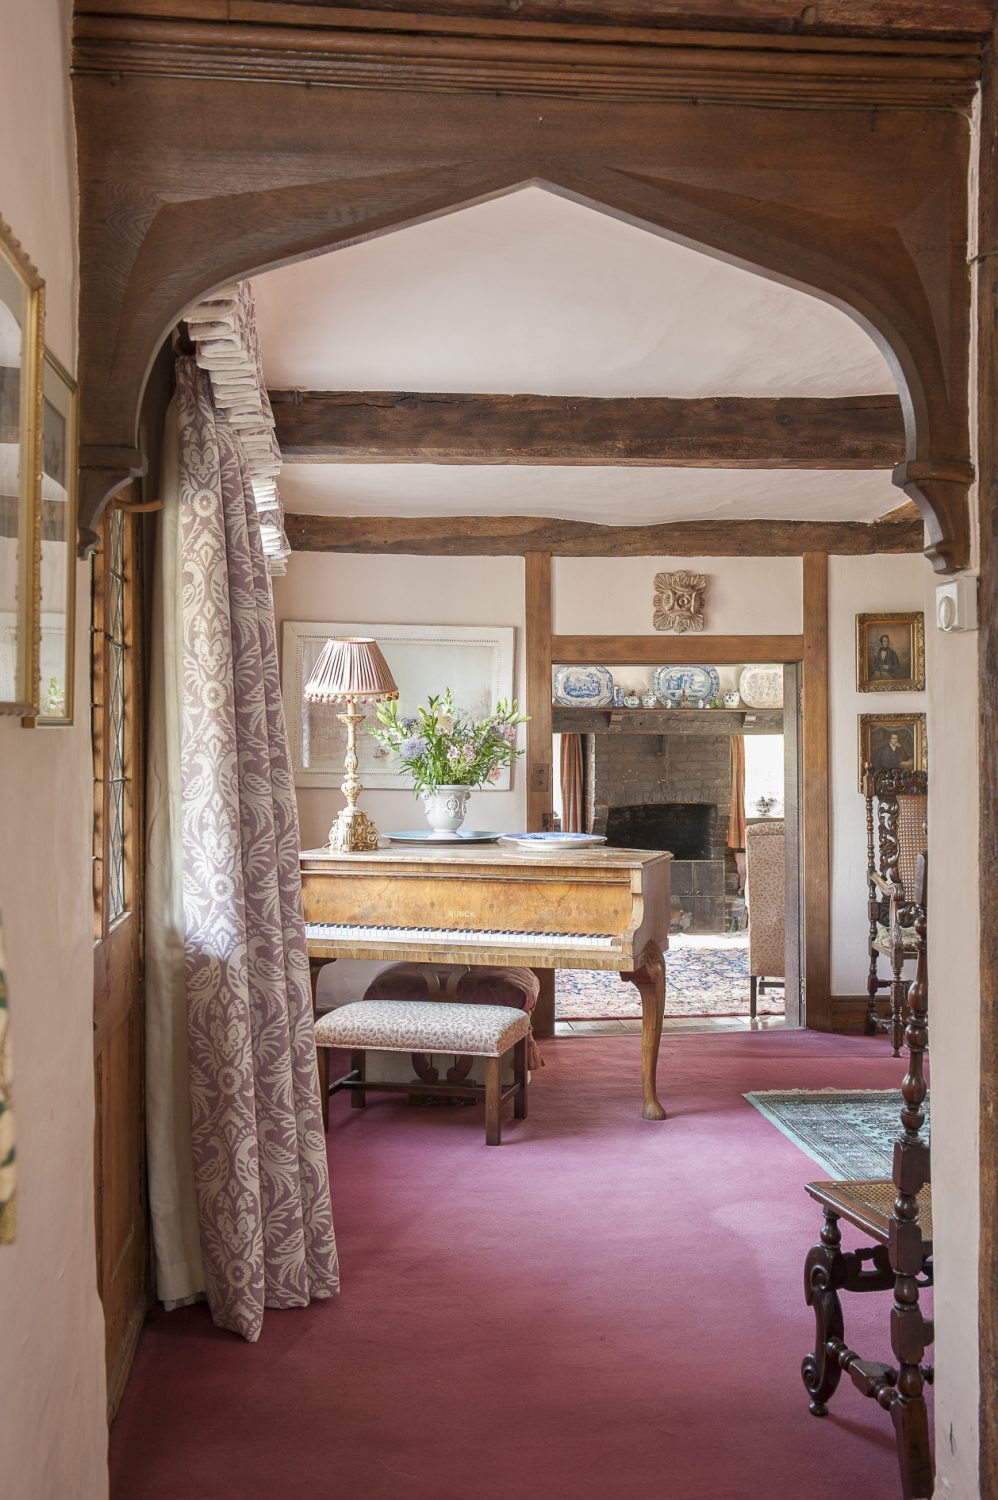 """Despite being such an old house, and in some ways a typical Wealden timber-framed building, it is surprisingly light inside with large rooms and relatively high ceilings. """"It's quite surprising, isn't it?"""" says Jane. """"Friends say it has a slightly Tuscan feel about it."""""""